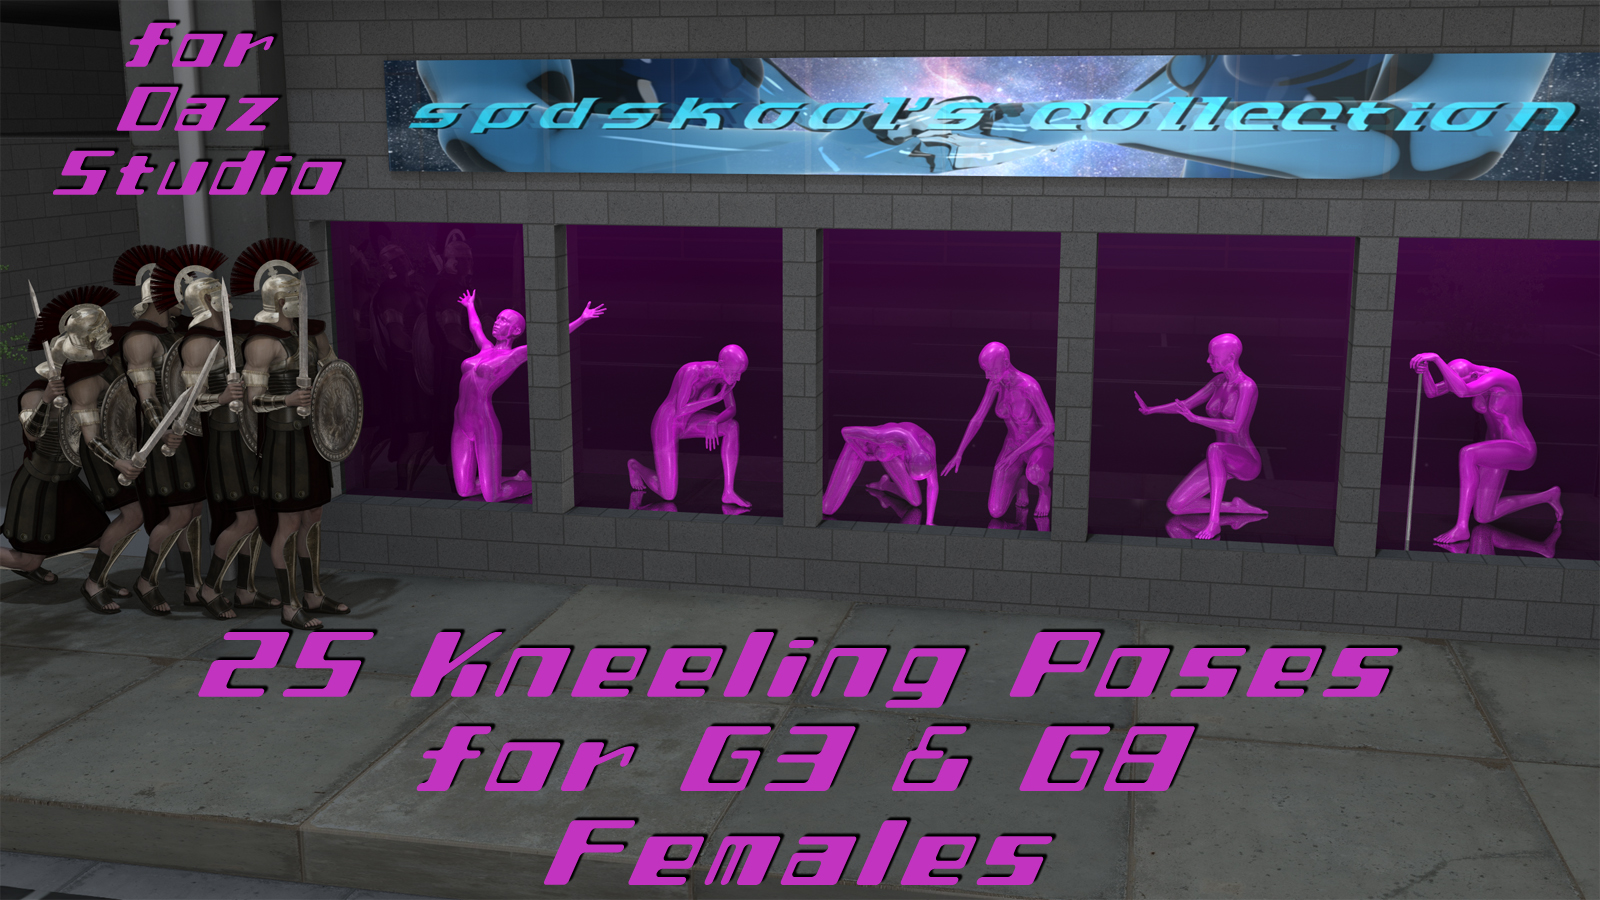 25 Kneeling Poses for G3 and G8 Females by spdskool